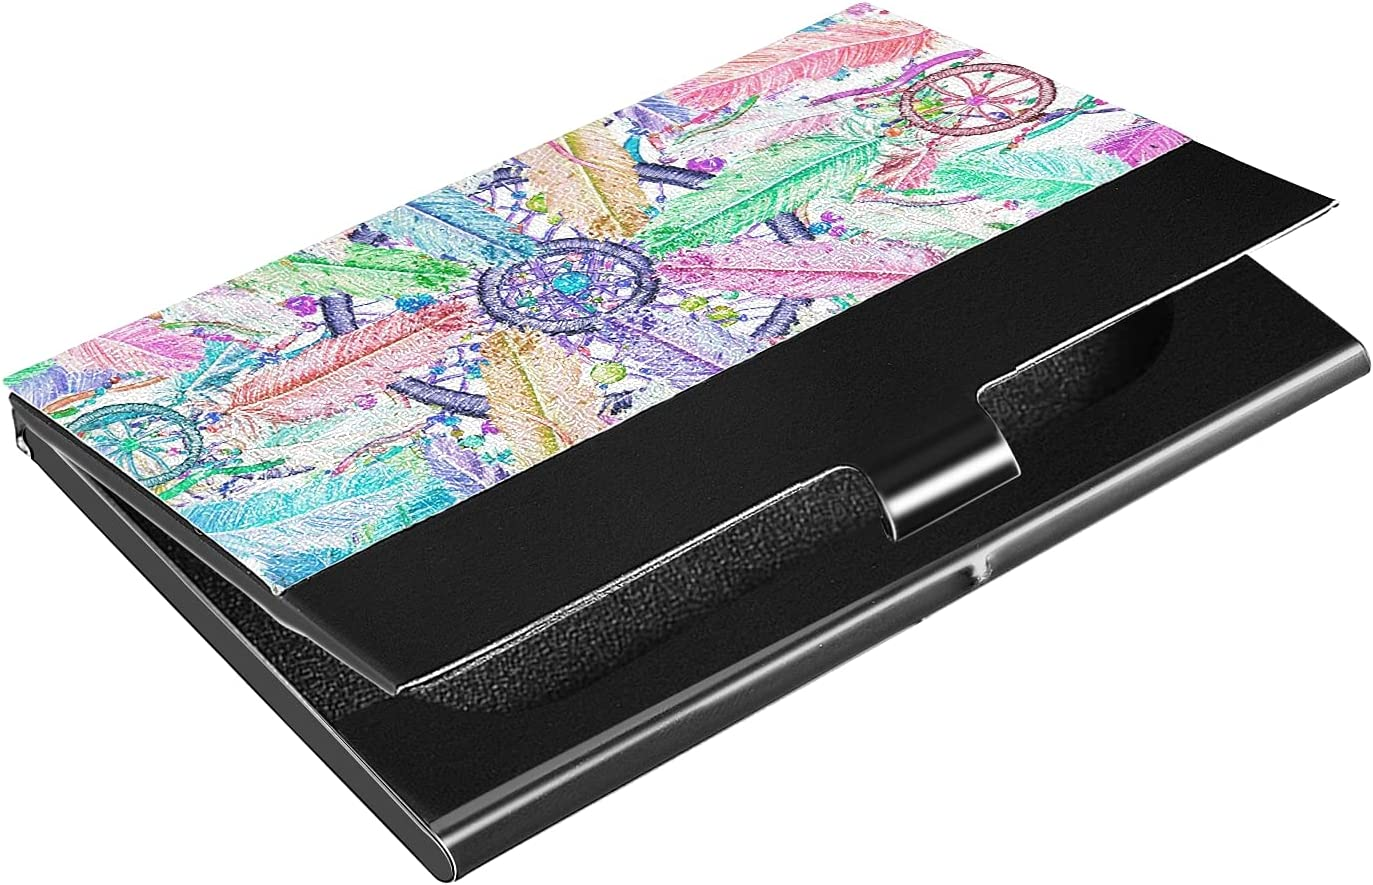 OTVEE Watercolor Bohemian Dreamcatcher Business Card Holder Wallet Stainless Steel & Leather Pocket Business Card Case Organizer Slim Name Card ID Card Holders Credit Card Wallet Carrier Purse for Wom